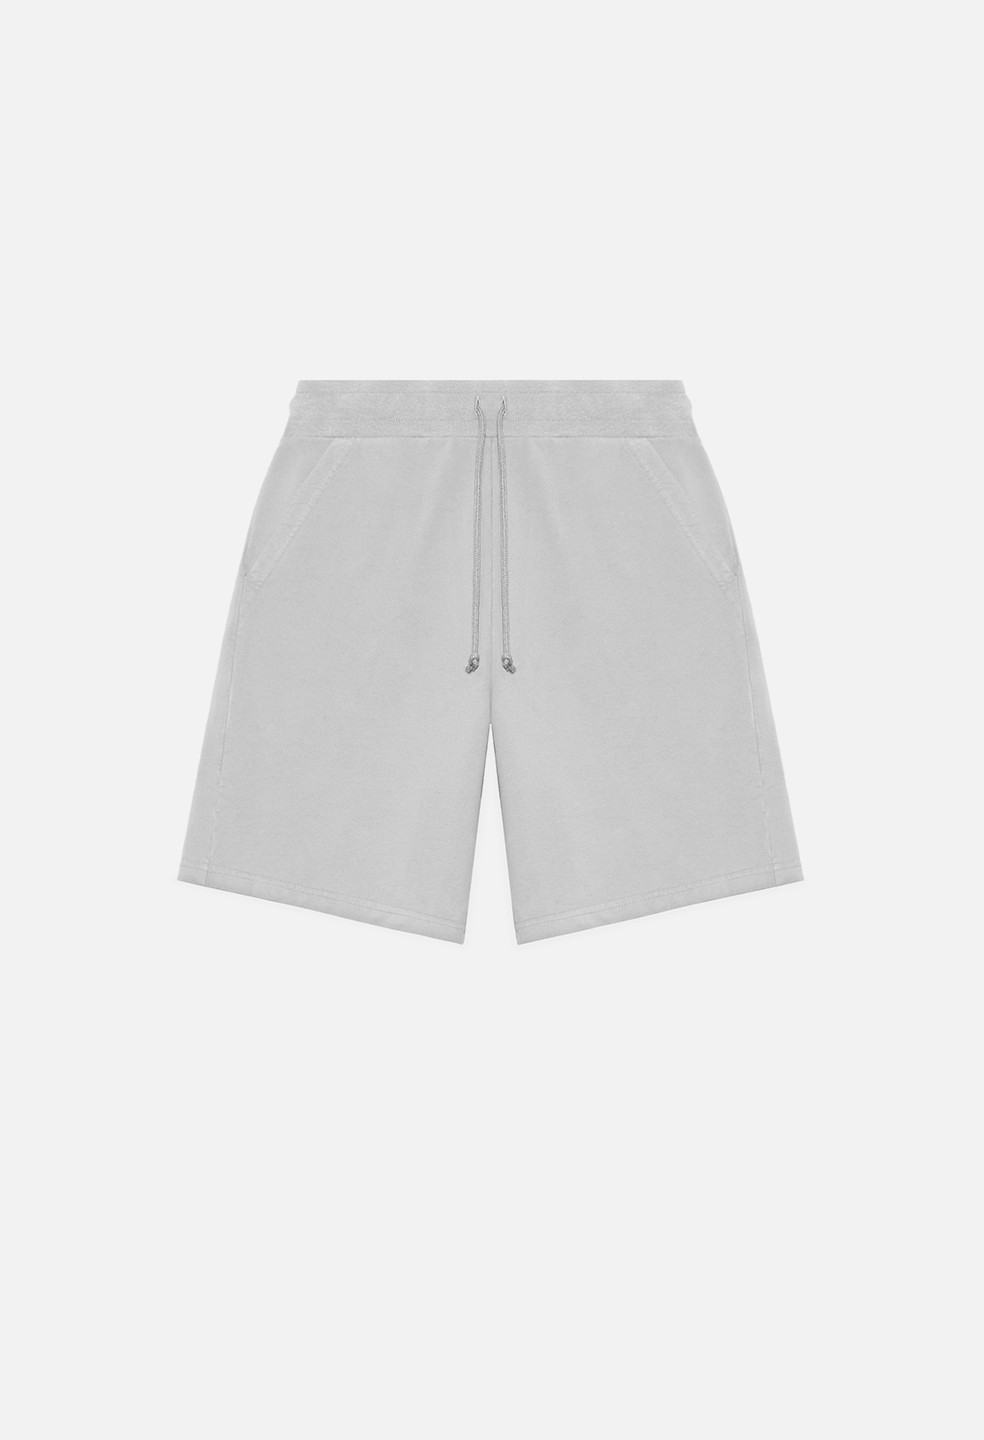 TERRY_SHORTS_FLAT_LT_GREY.jpg